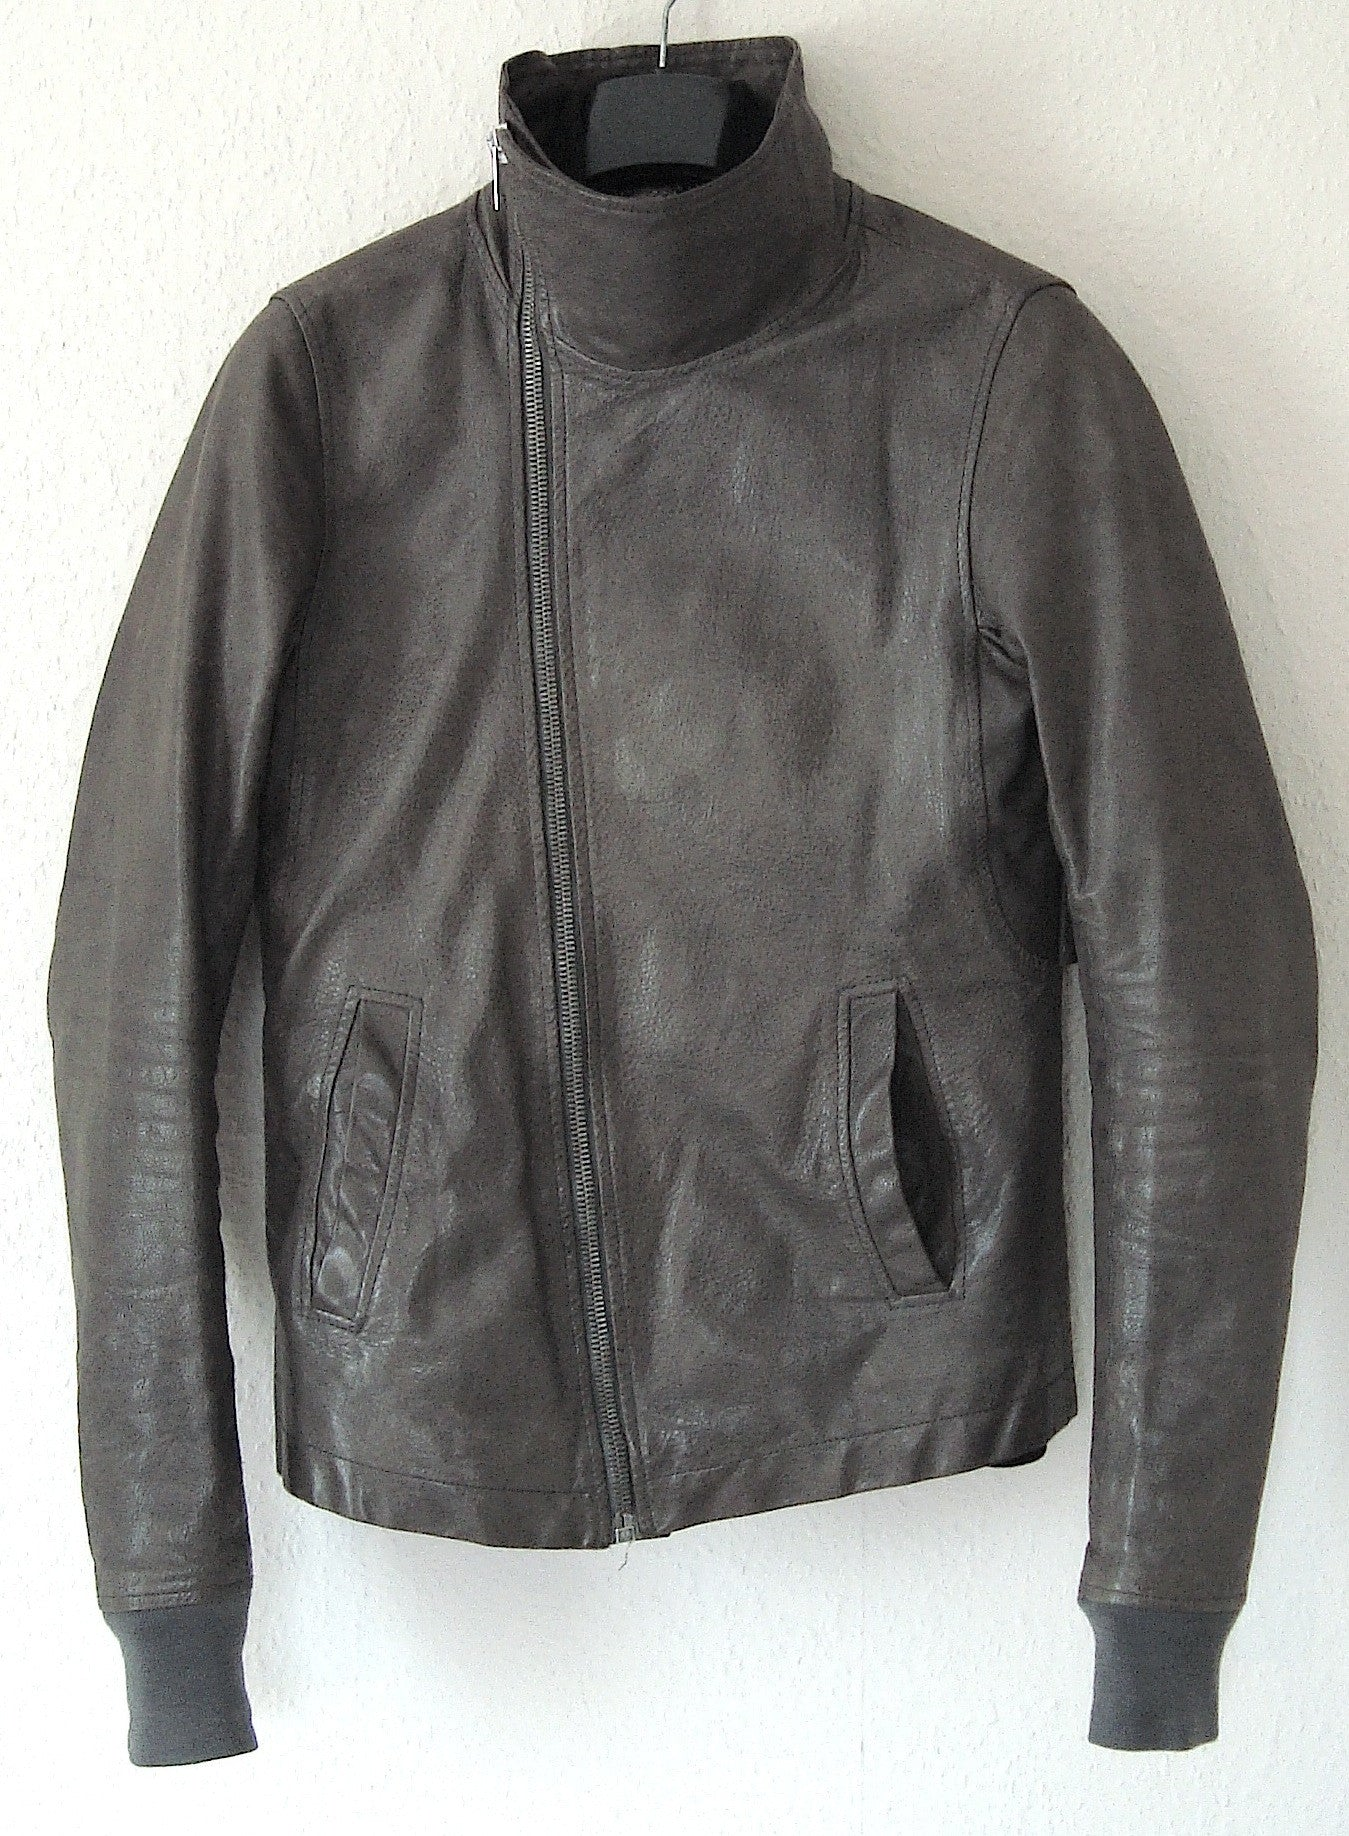 2009 Structured Lamb Leather Bauhaus Jacket